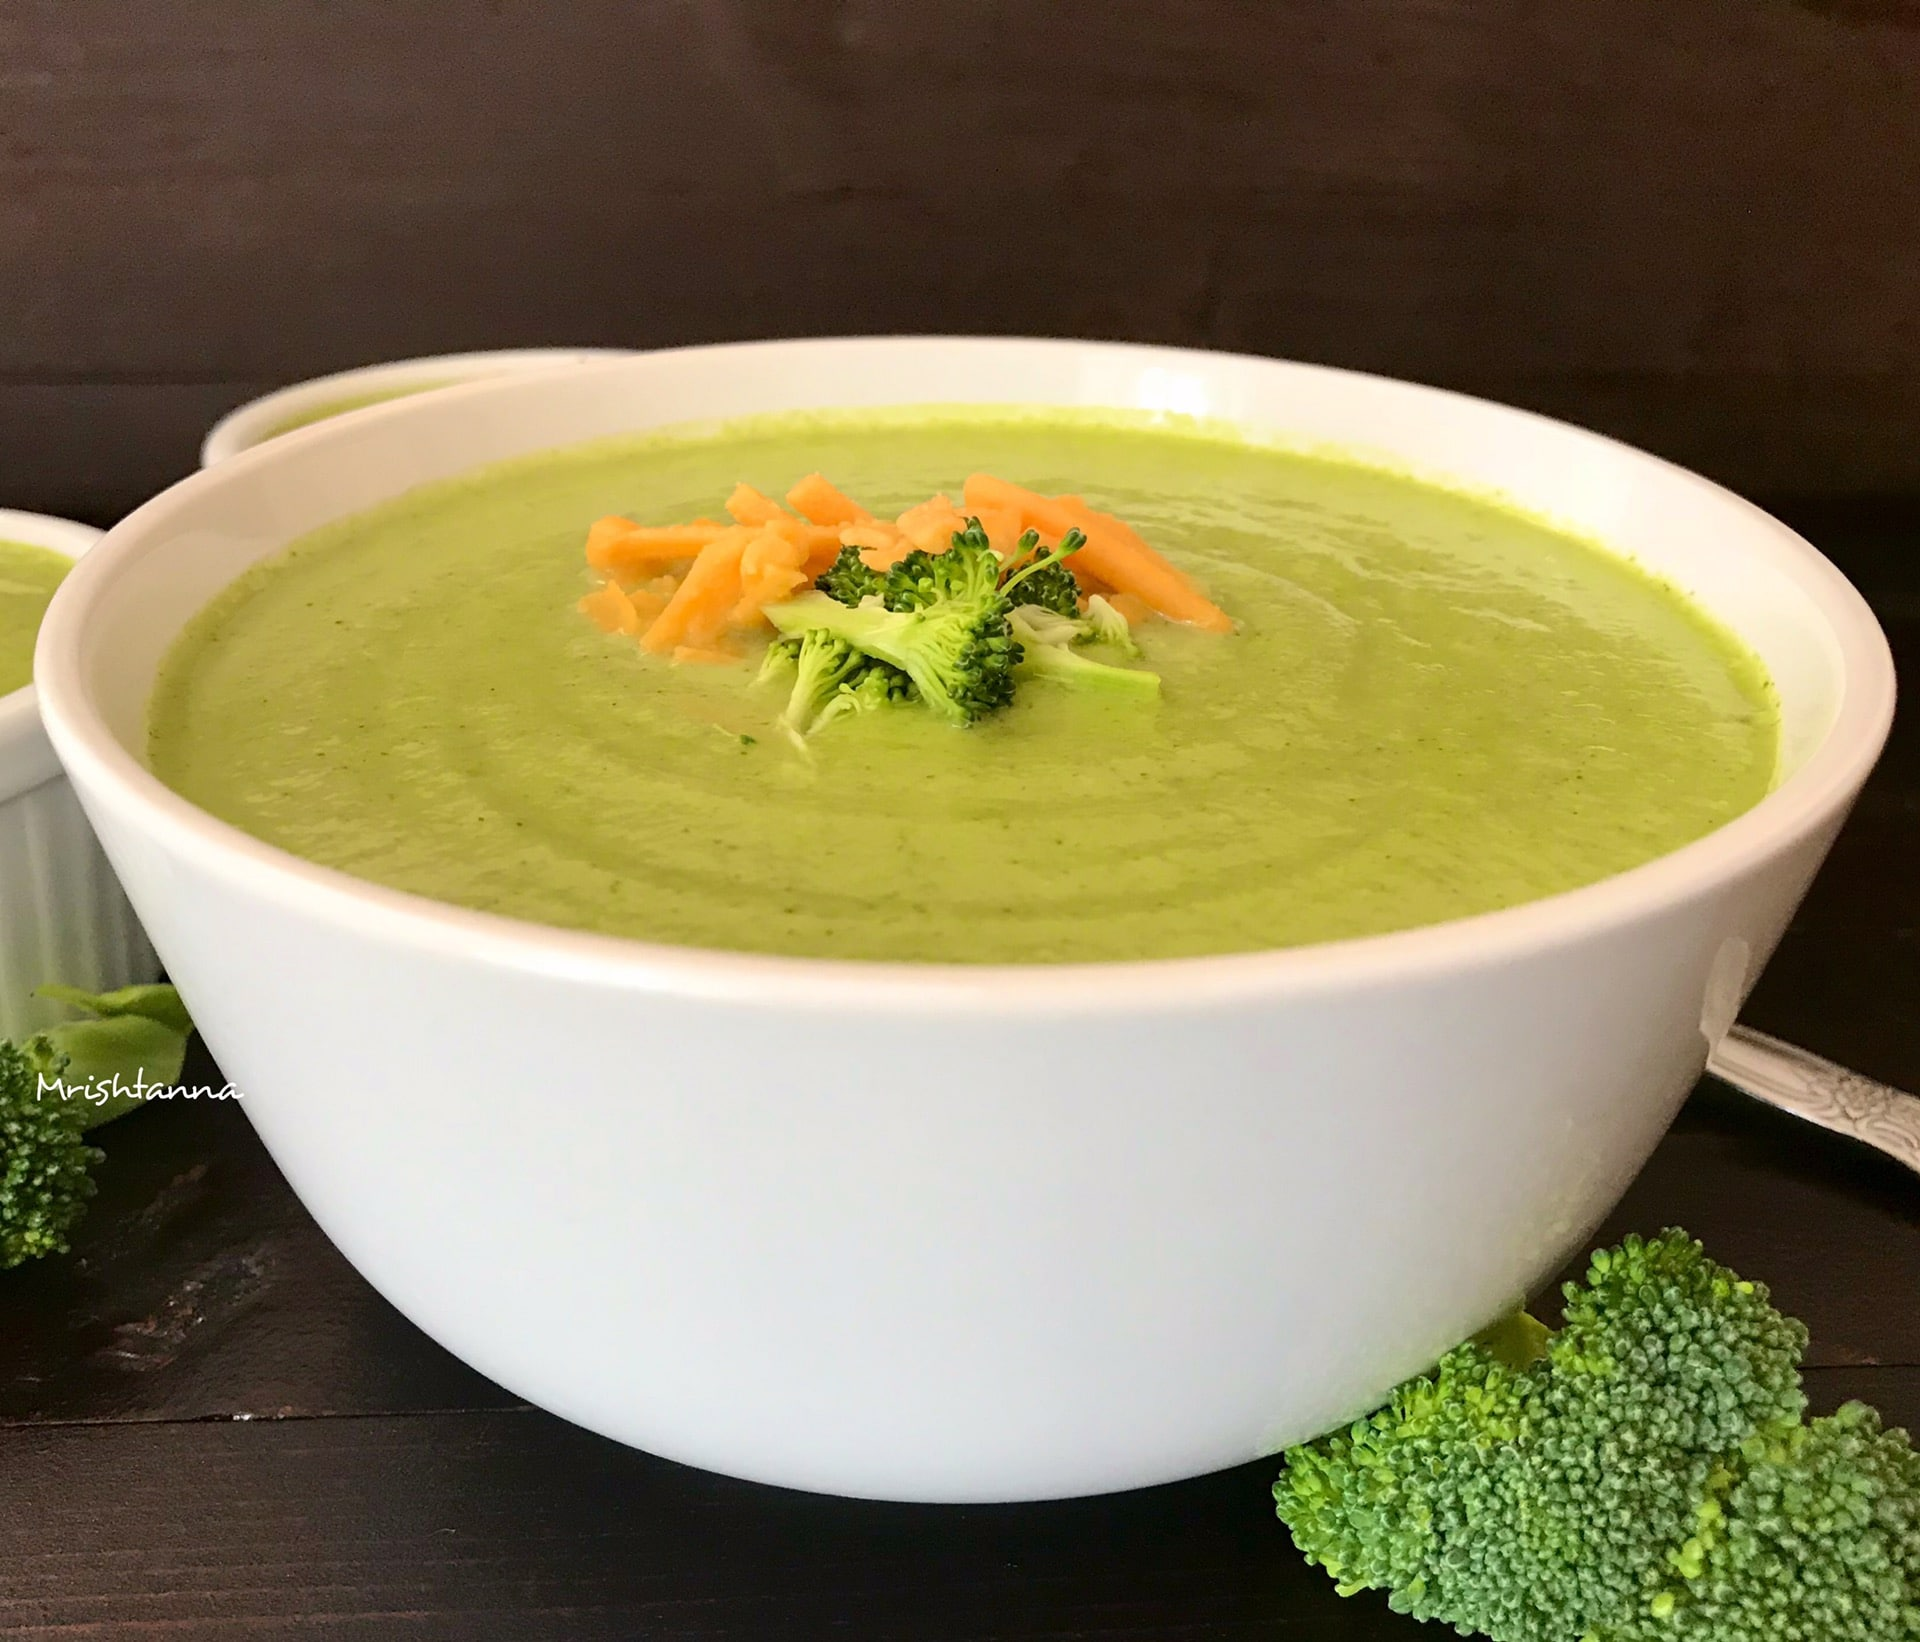 A bowl of broccoli soup and broccoli on a plate